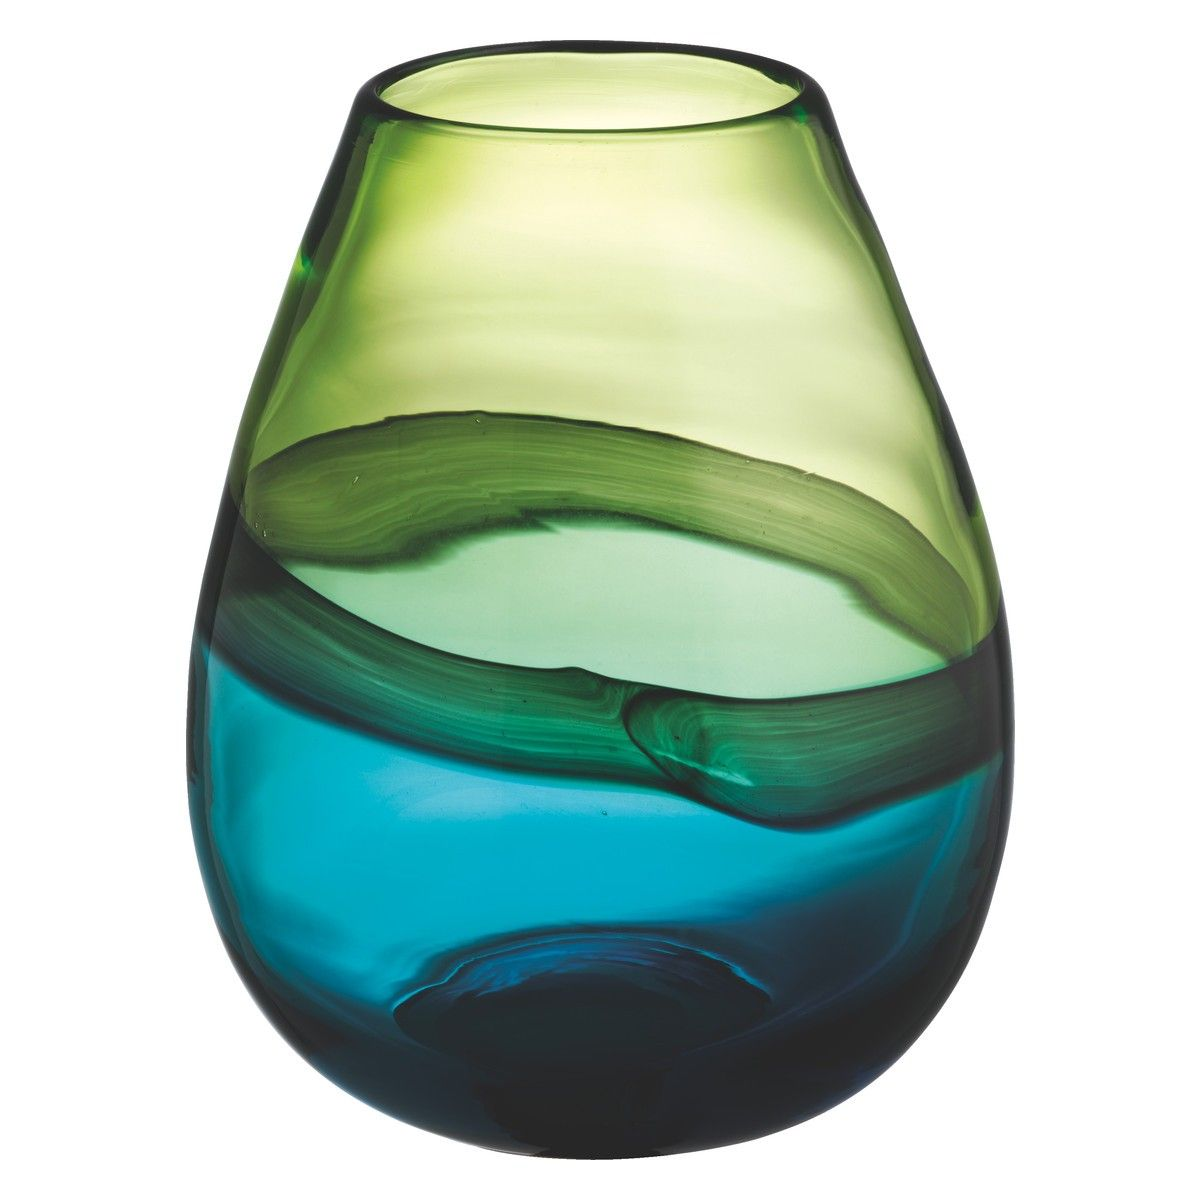 Pin by coco of summer on home pinterest glass clocks and with its curvy tulip shape and beautiful overlapping colours the cielo blue and green glass vase is a stunningly beautiful design buy now at habitat uk reviewsmspy